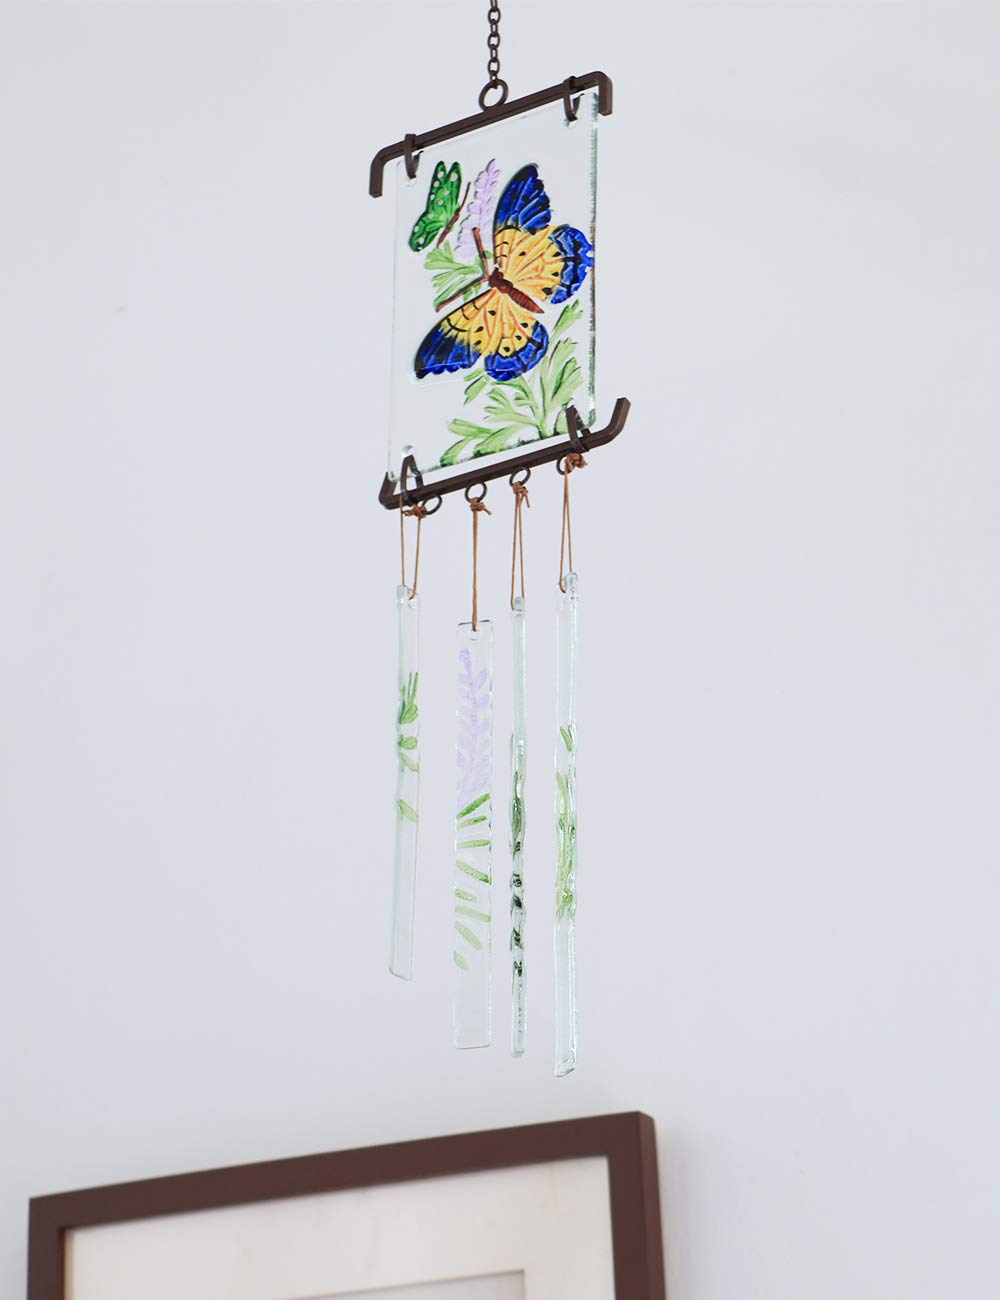 Afirst Dragonfly Wind Chimes 21 inches Colorful Glass Wind Chime Unique Gift Idea for Family and Friends Great Decoration for Home and Garden